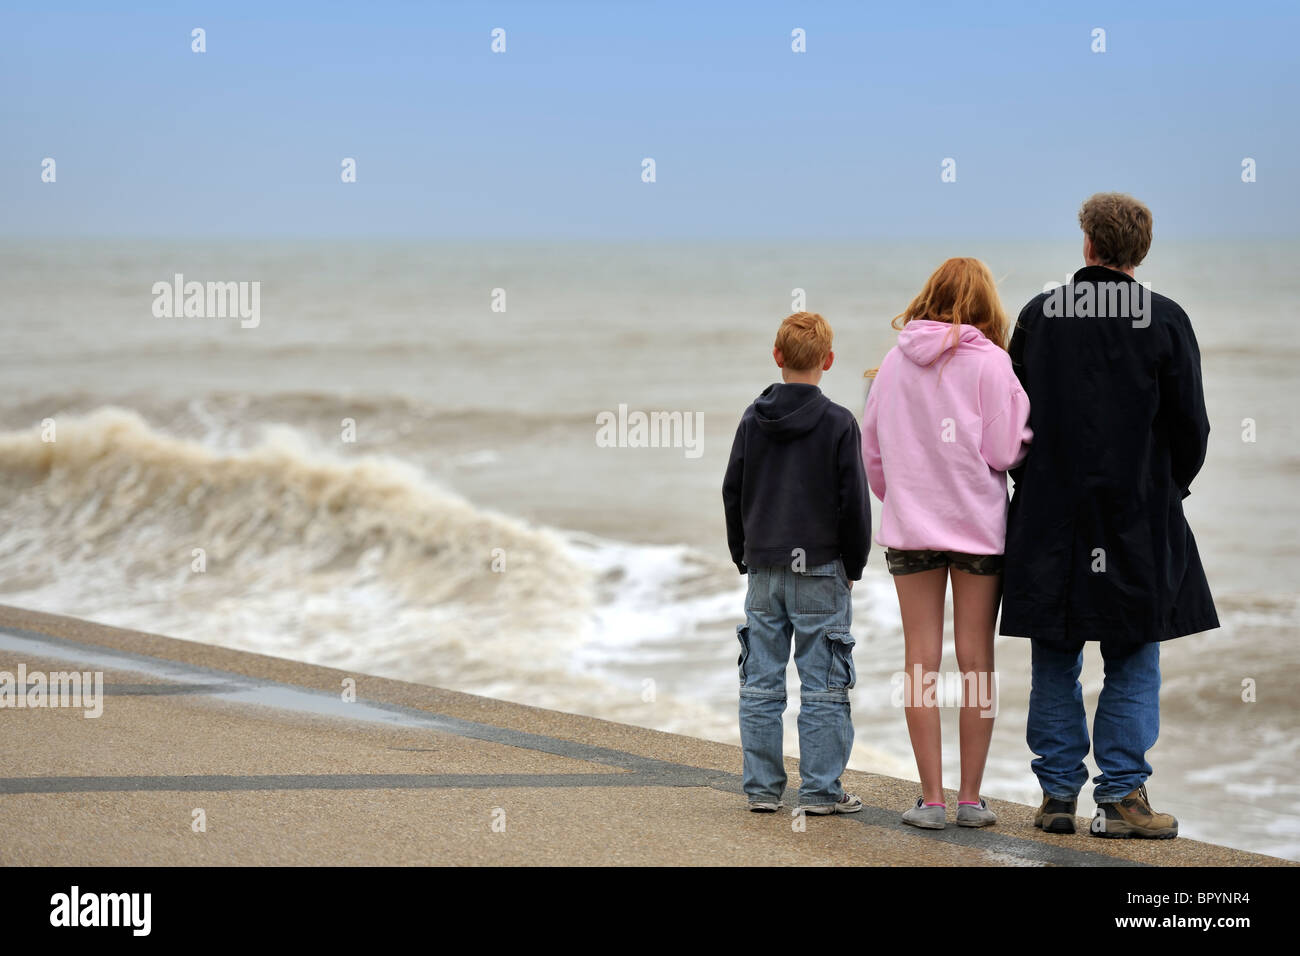 Looking out to sea - Stock Image